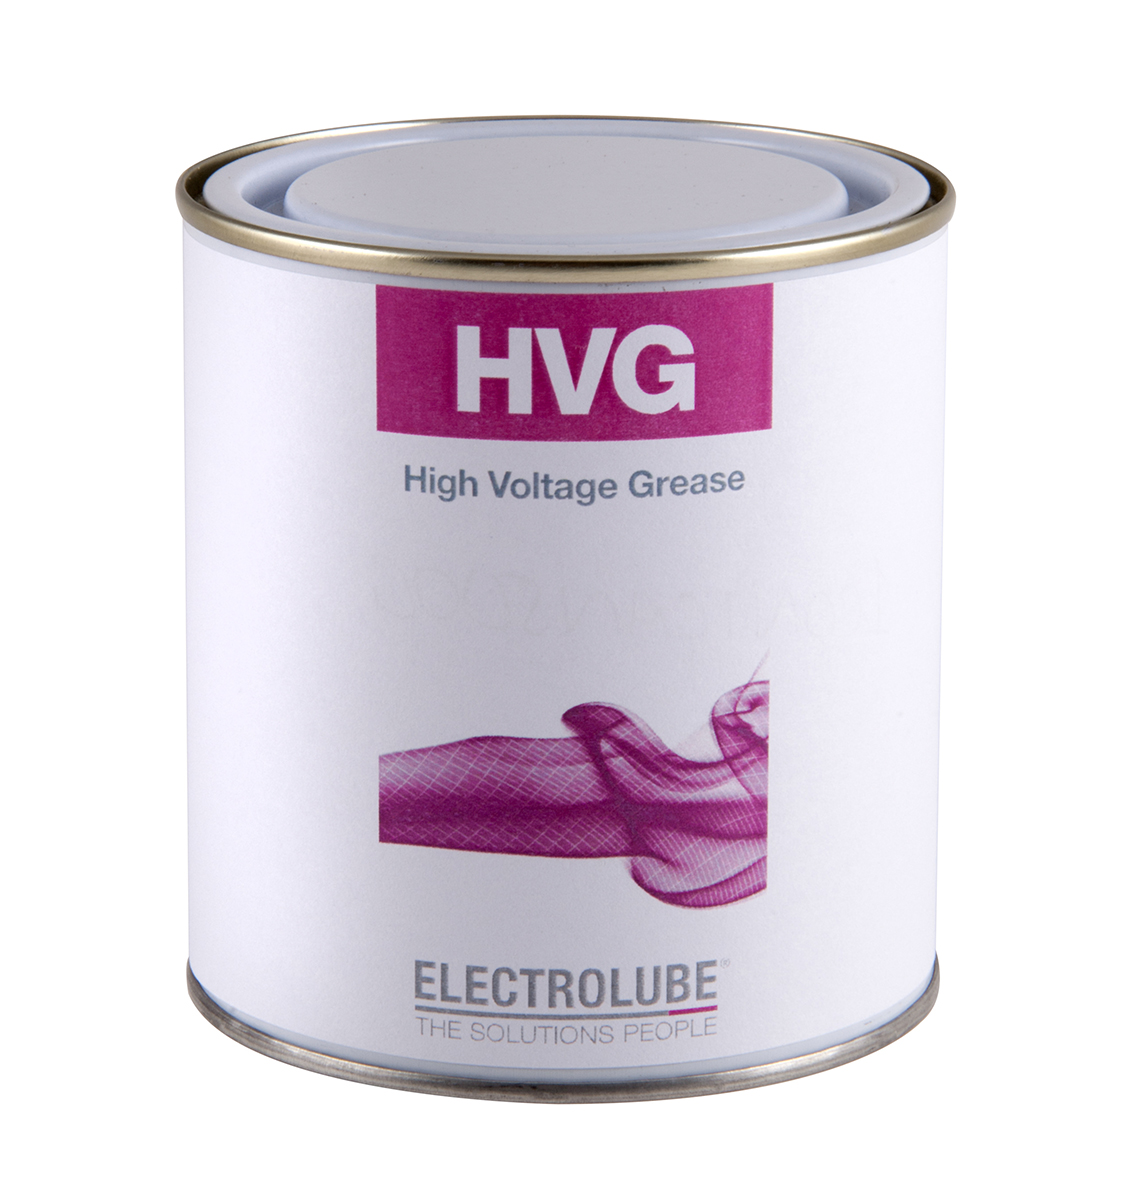 High Voltage Grease - HVG